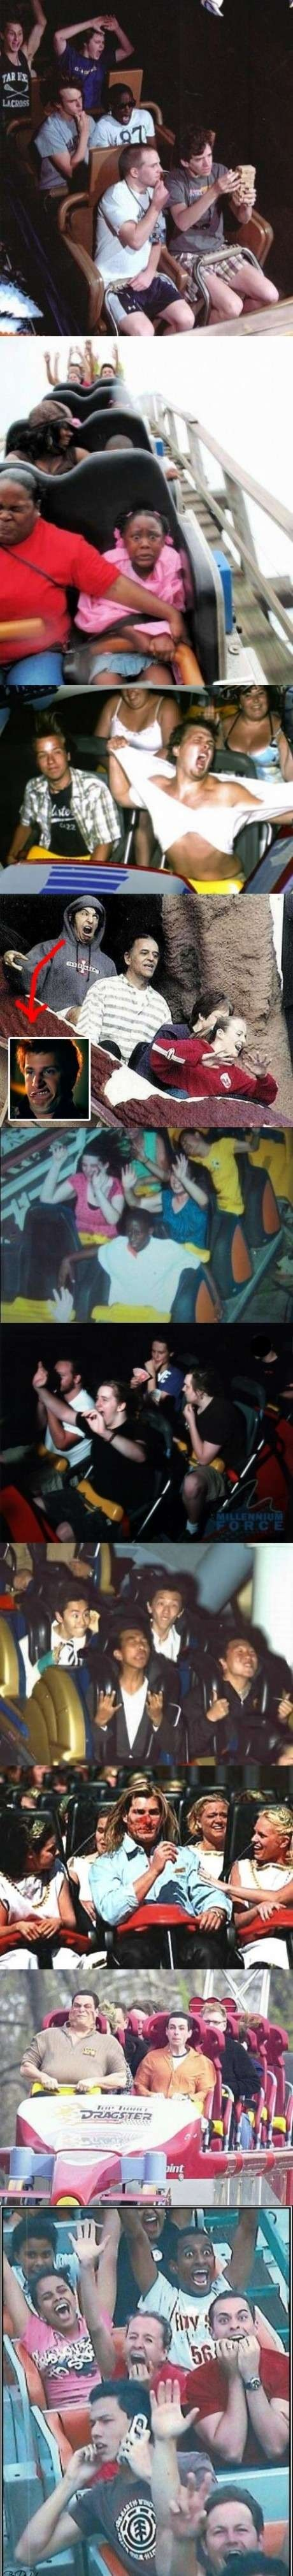 Rollercoaster faces